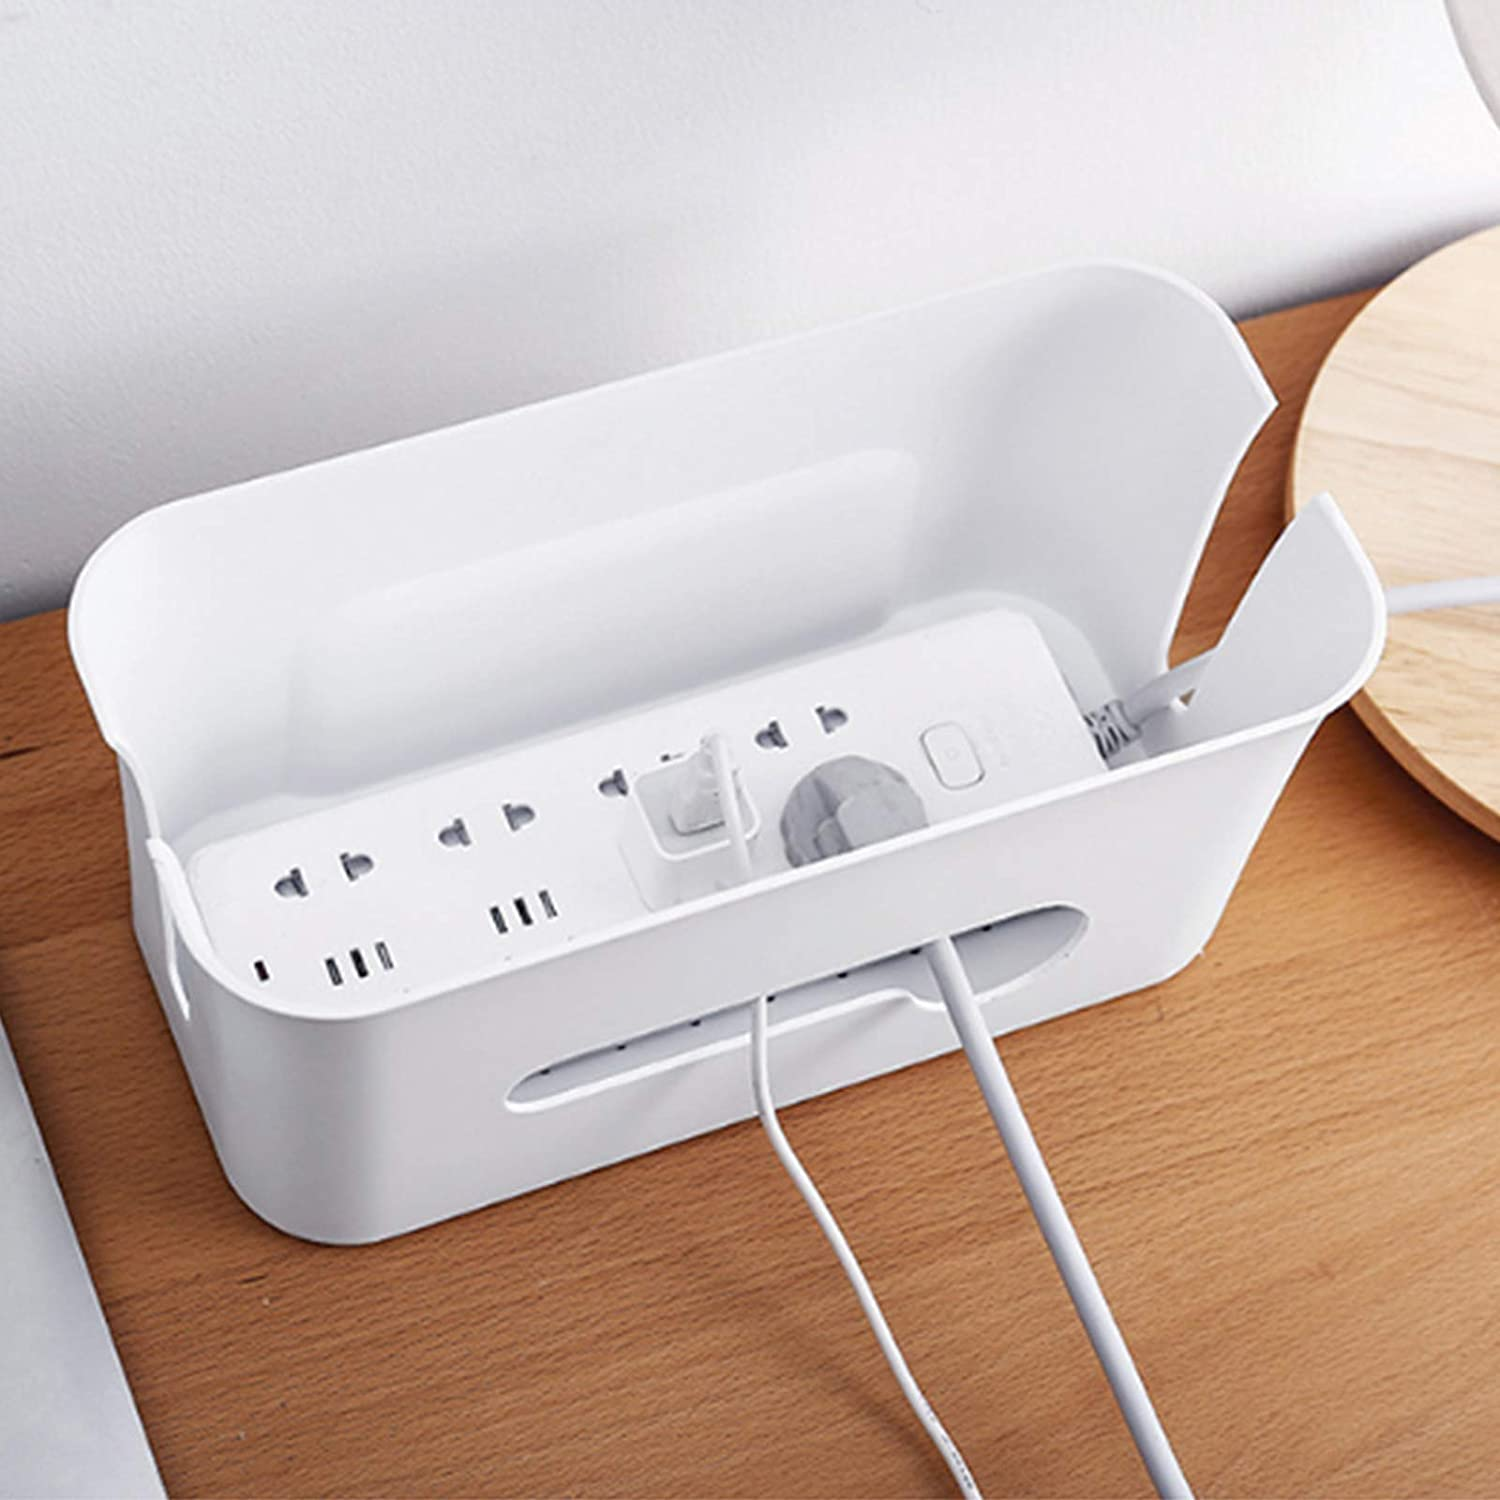 with Lid Cable Organizer Box to Cover and Hide Extension Lead /& Cord with 10 Cable Tidy Bases Cable Storage Box Organiser